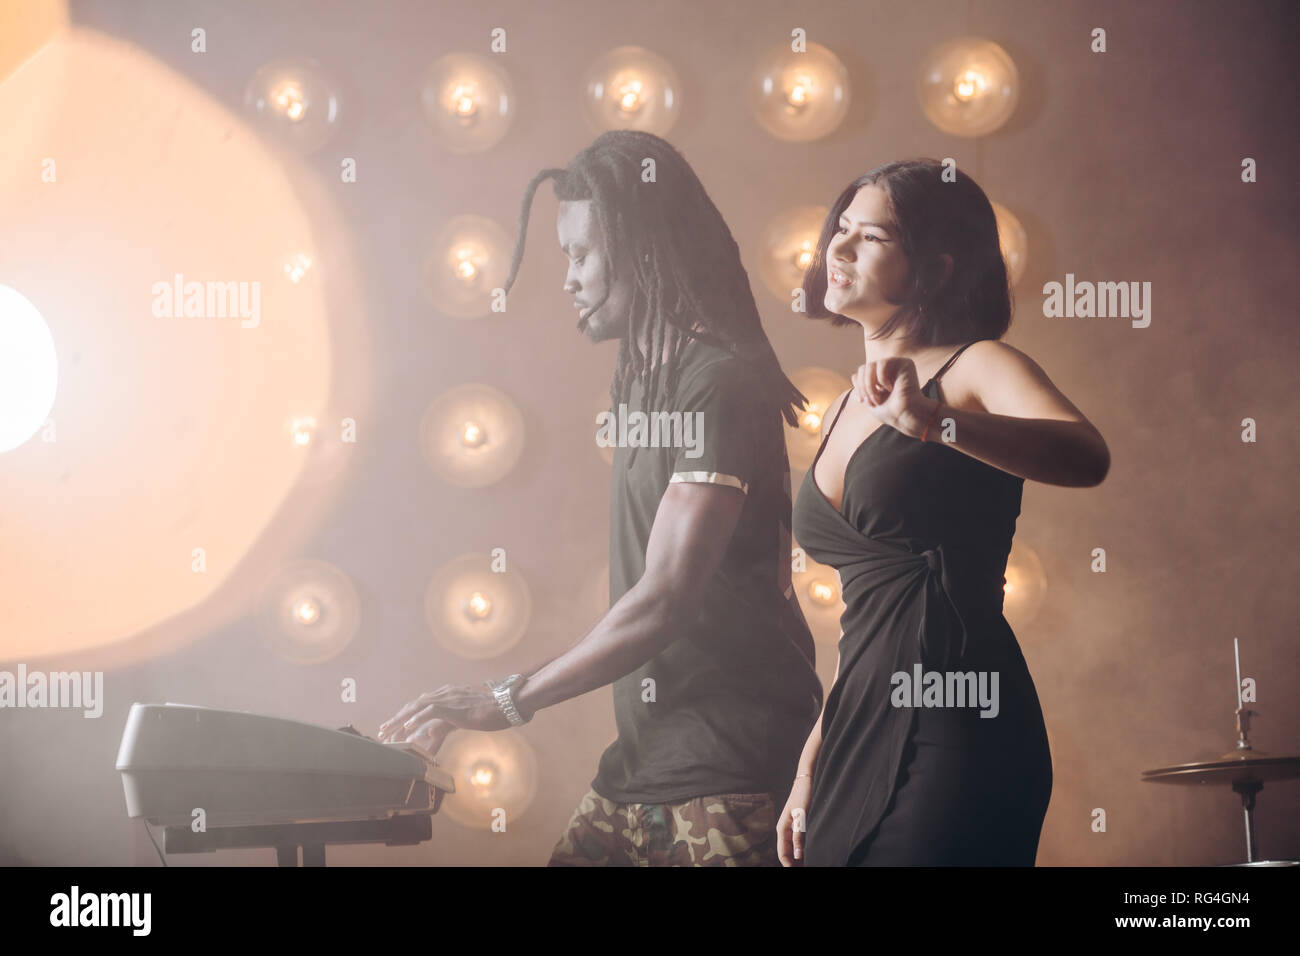 beautiful vocalist girl is singing on the stage. - Stock Image